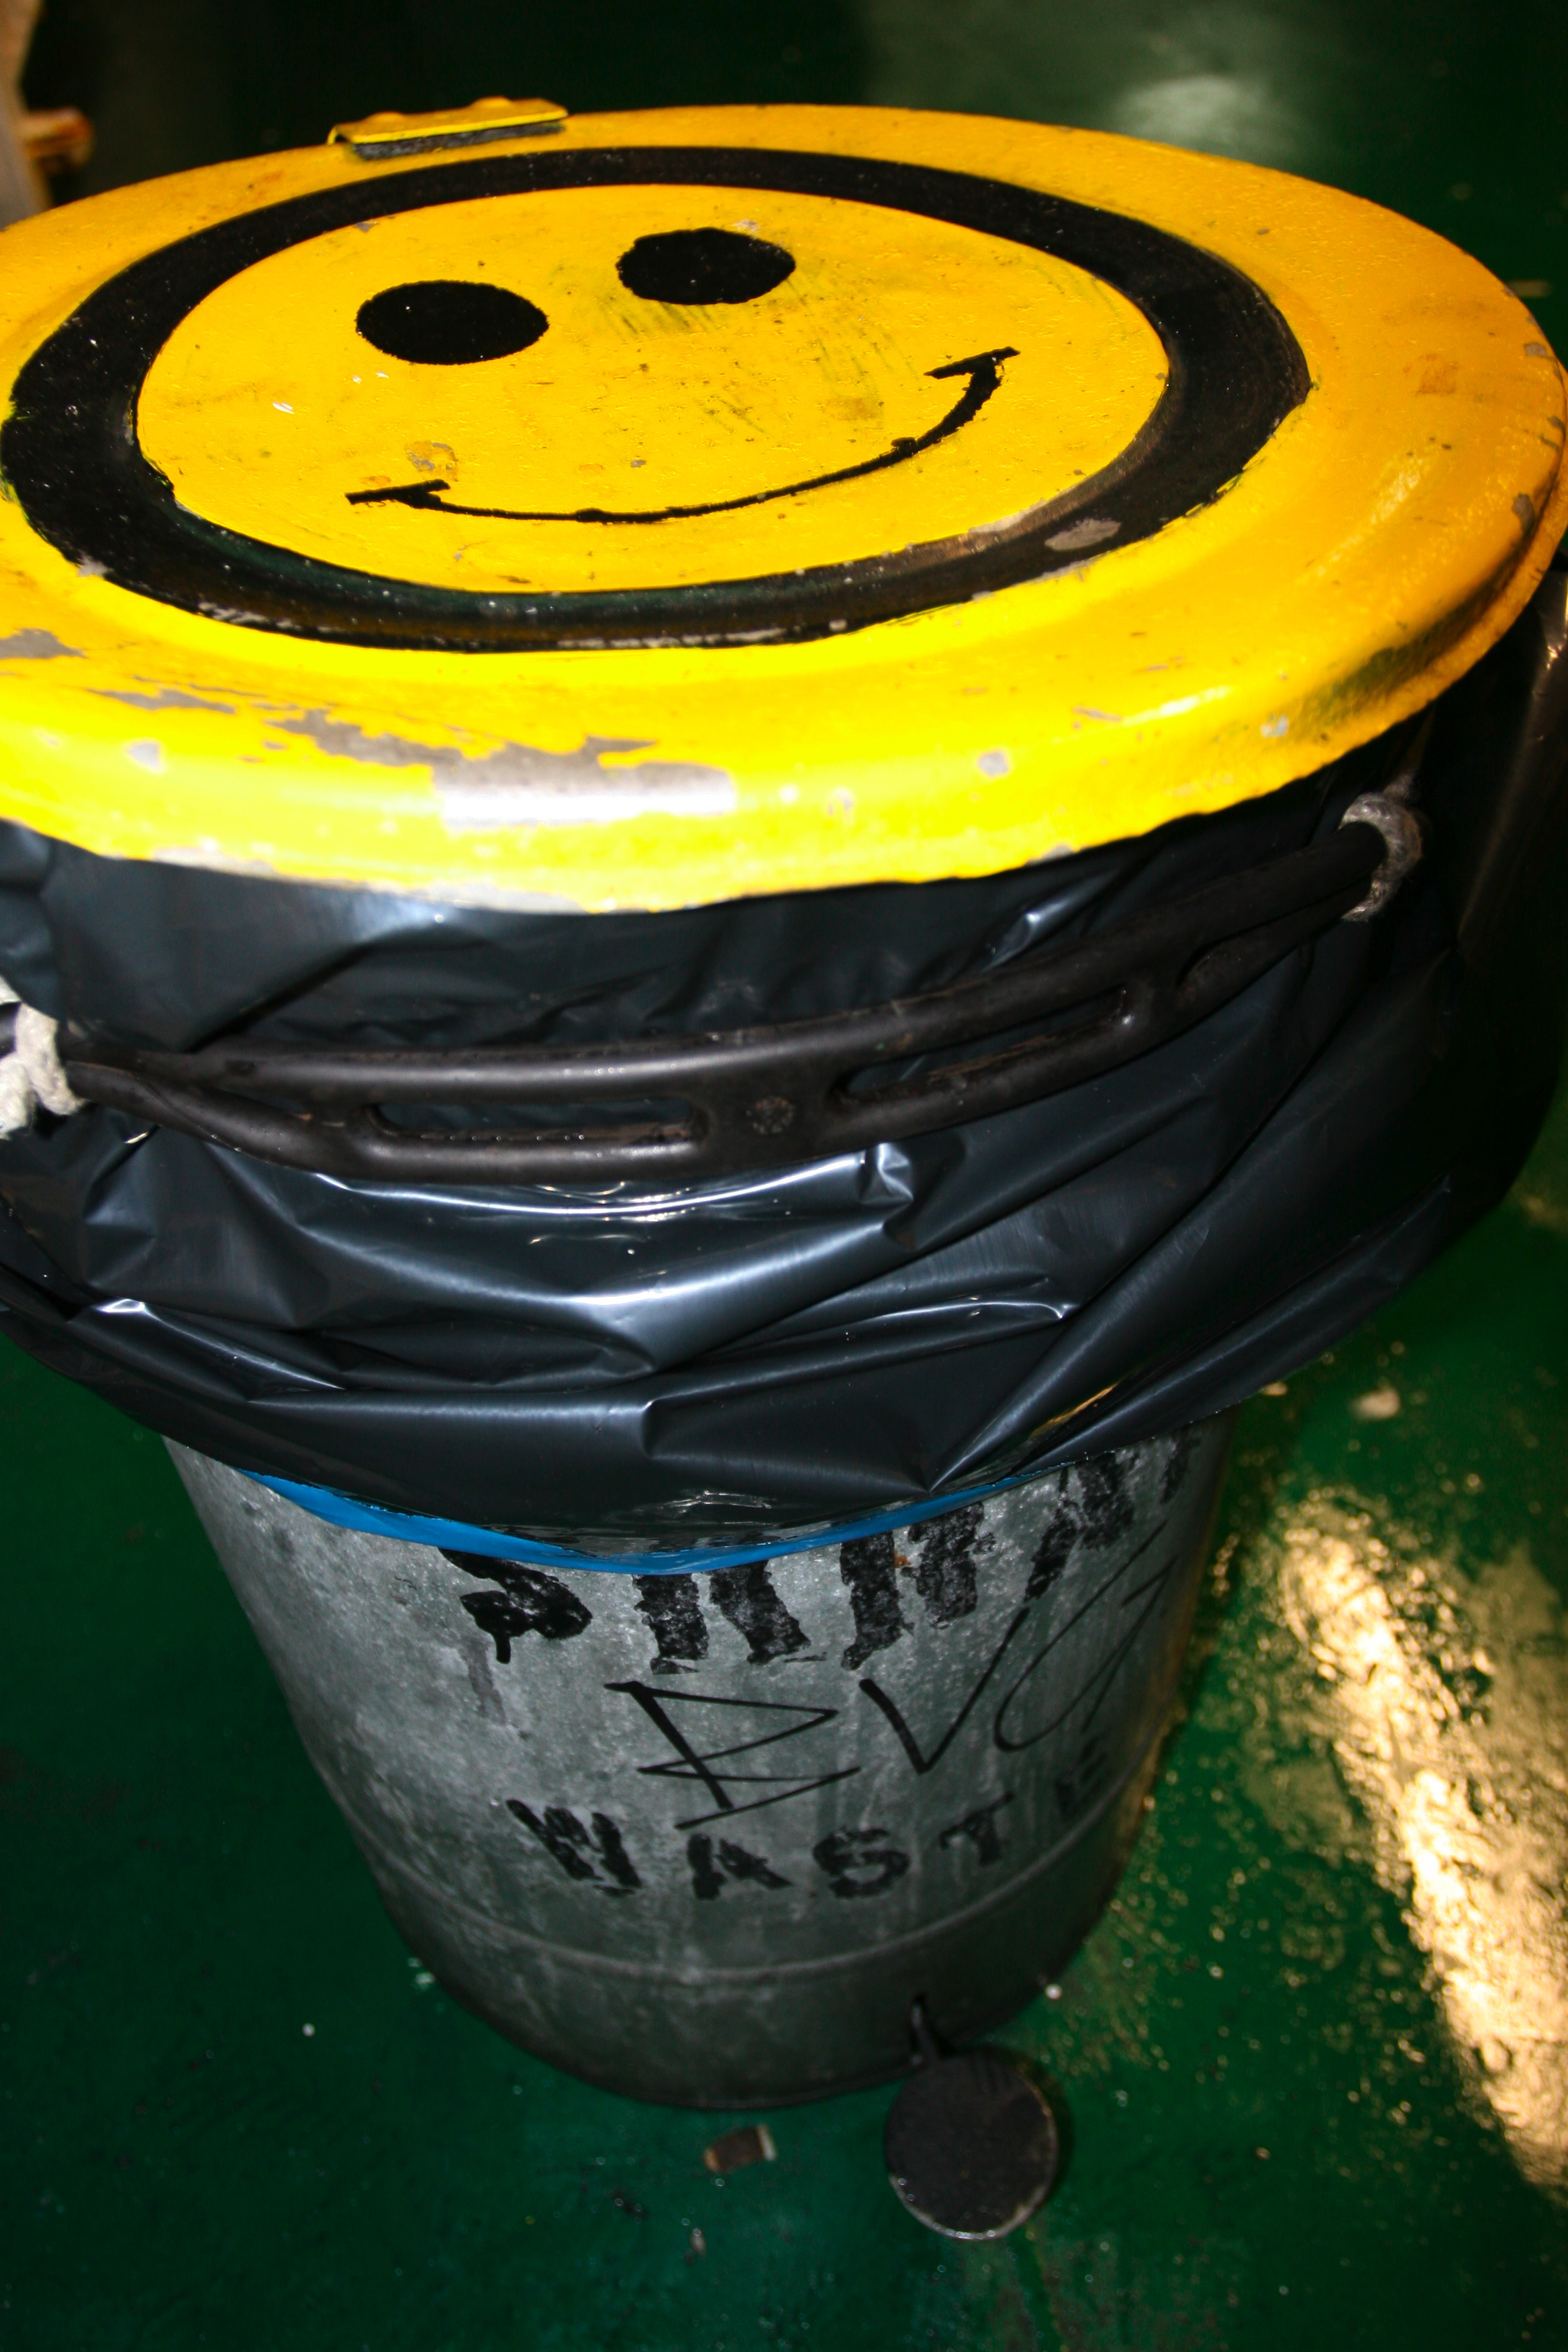 Smile, Bspo06, Container, Trashcan, Yellow, HQ Photo